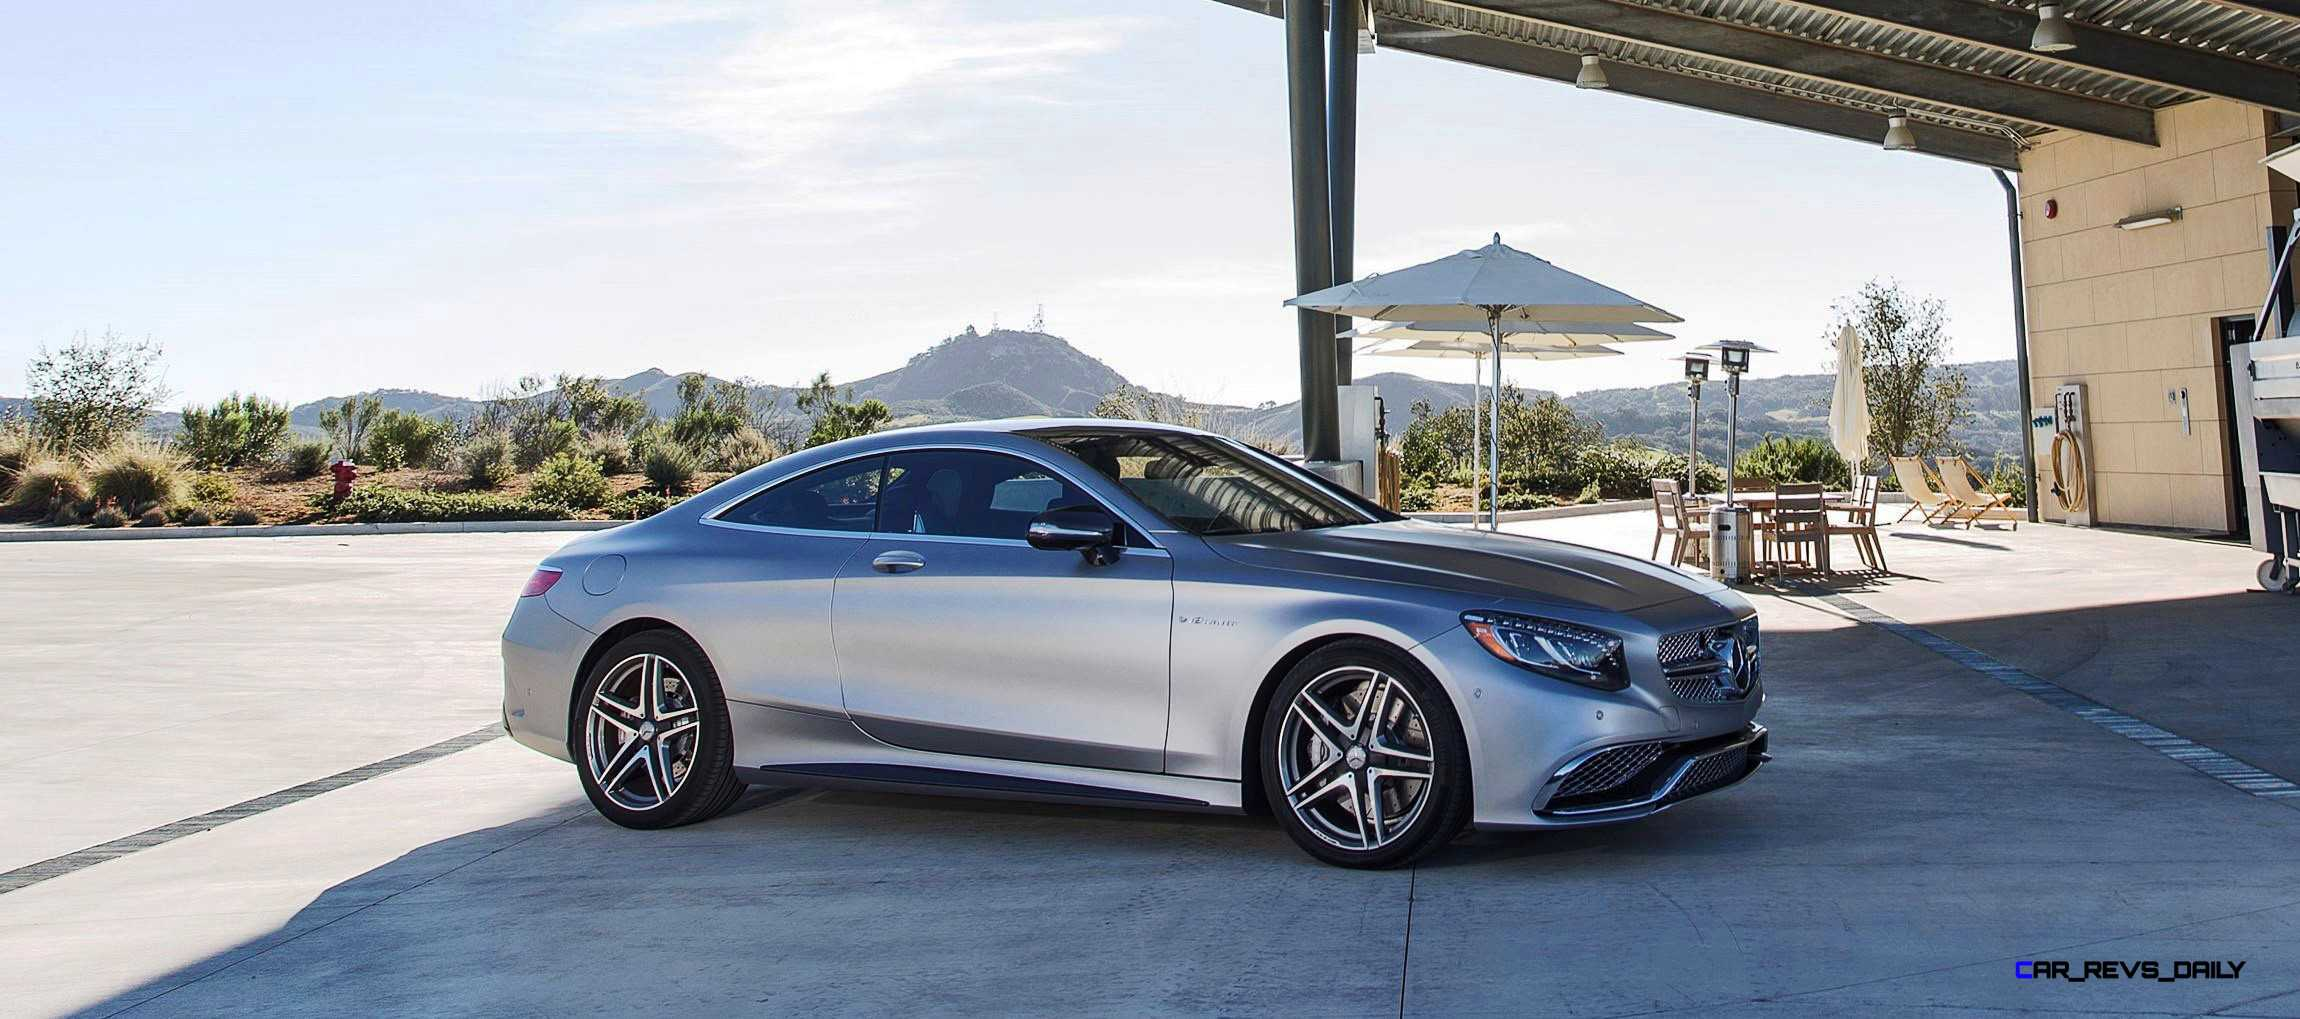 2015 mercedes benz s65 amg coupe usa for Mercedes benz amg 65 price